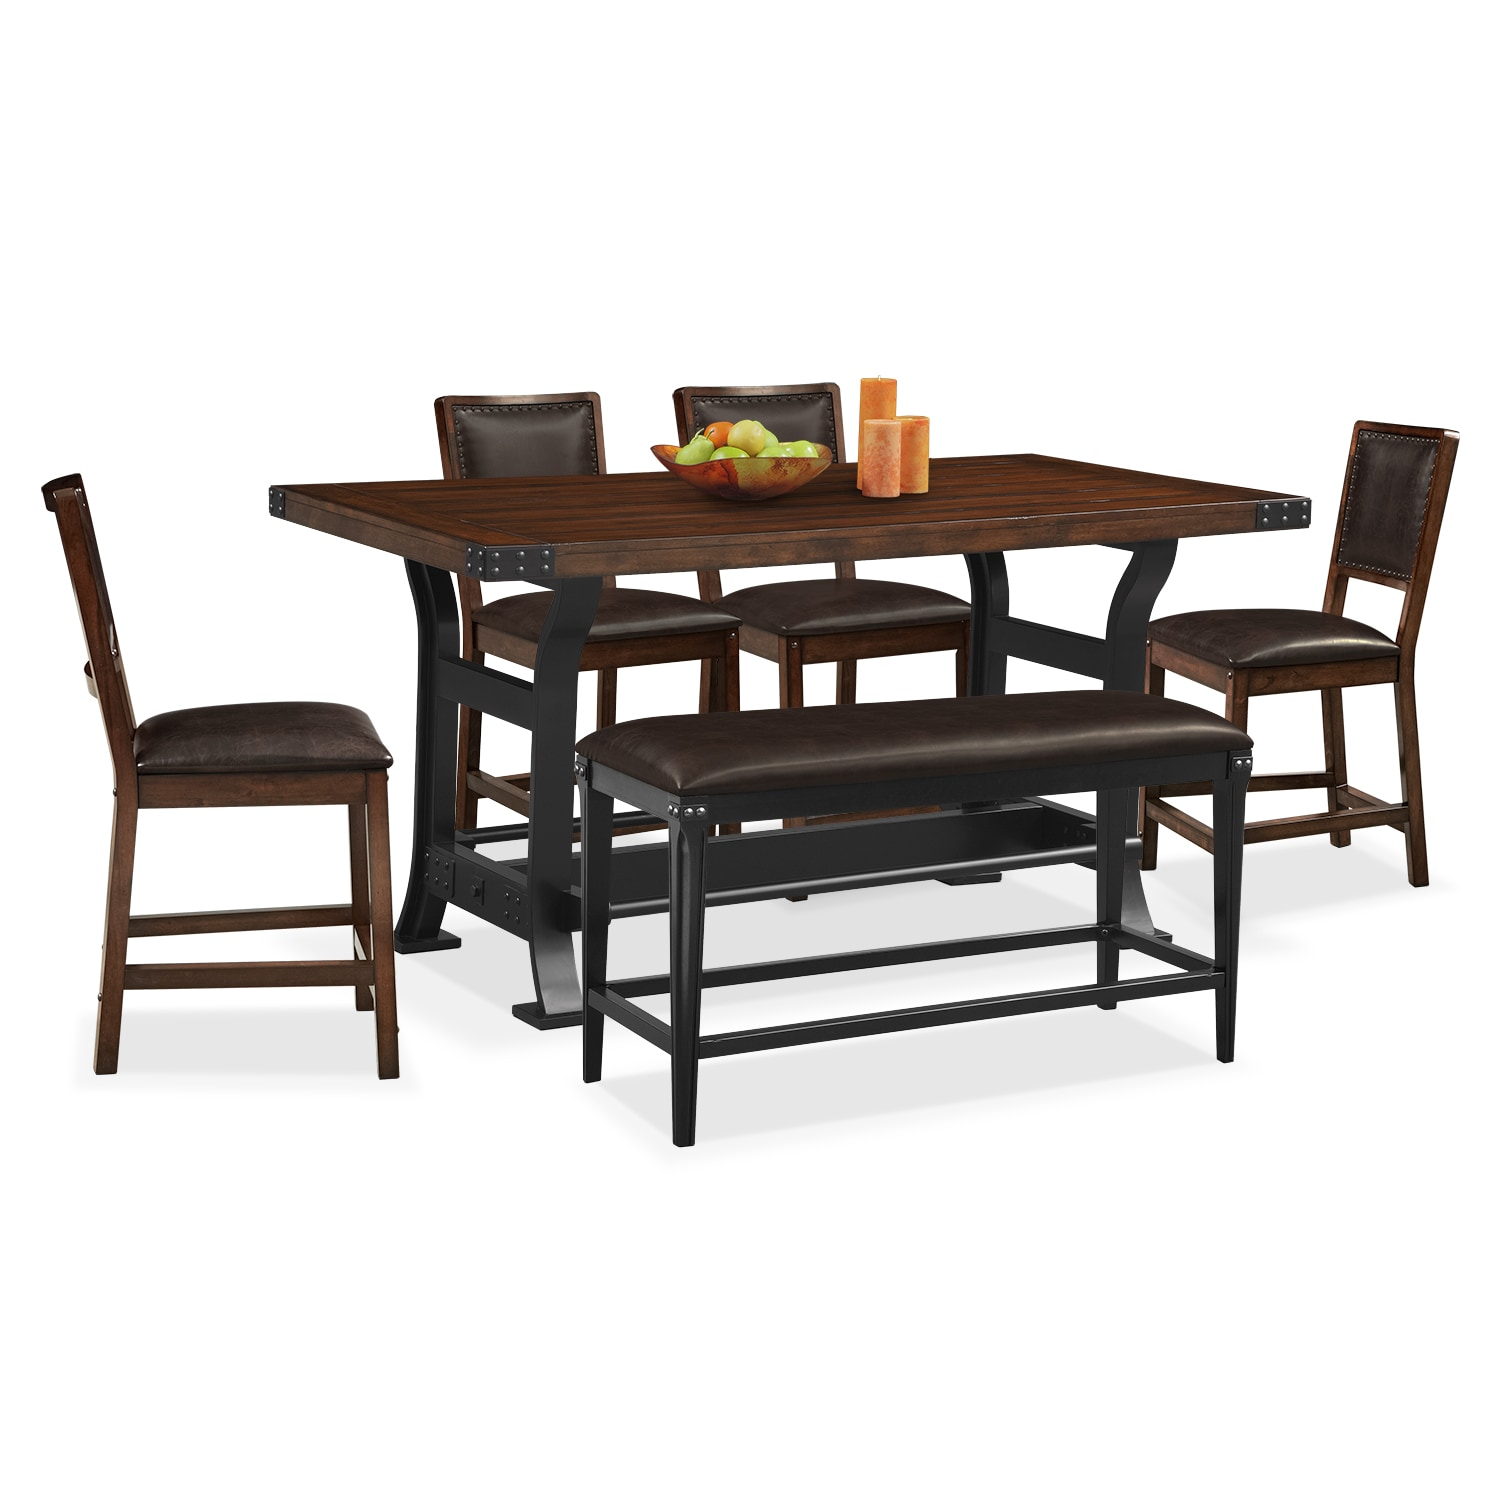 newcastle counter height table 4 chairs and bench mahogany value city furniture. Black Bedroom Furniture Sets. Home Design Ideas